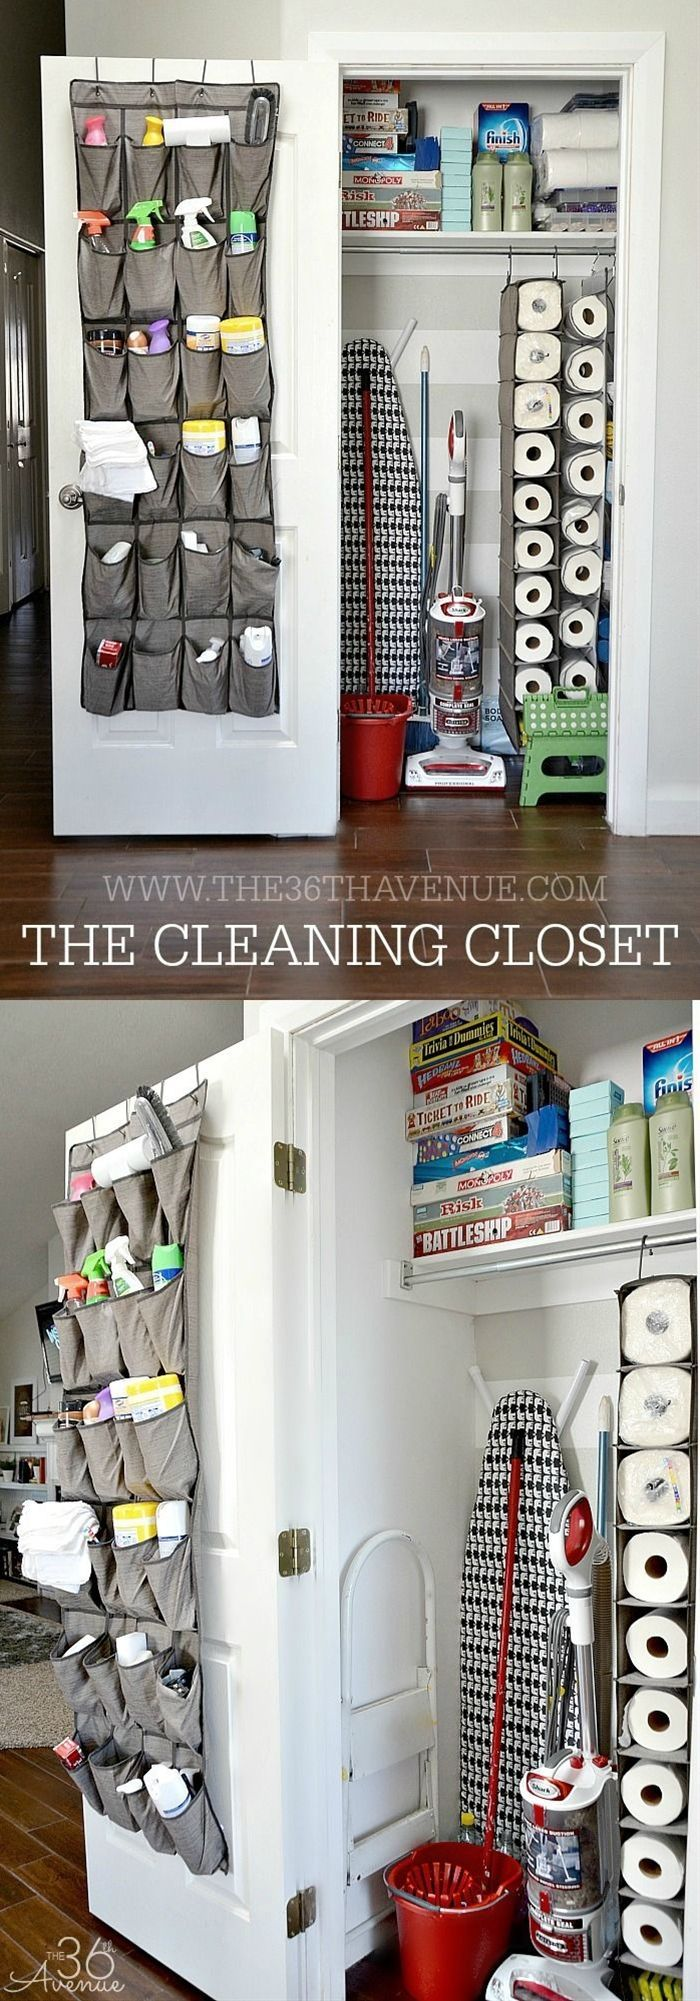 The first thing I did was purchase a few closet organization gadgets. These are normally for shoes but I used them to store the cleaning products we use most. If you are thinking about doing something like this make sure to put your money in strong ones s